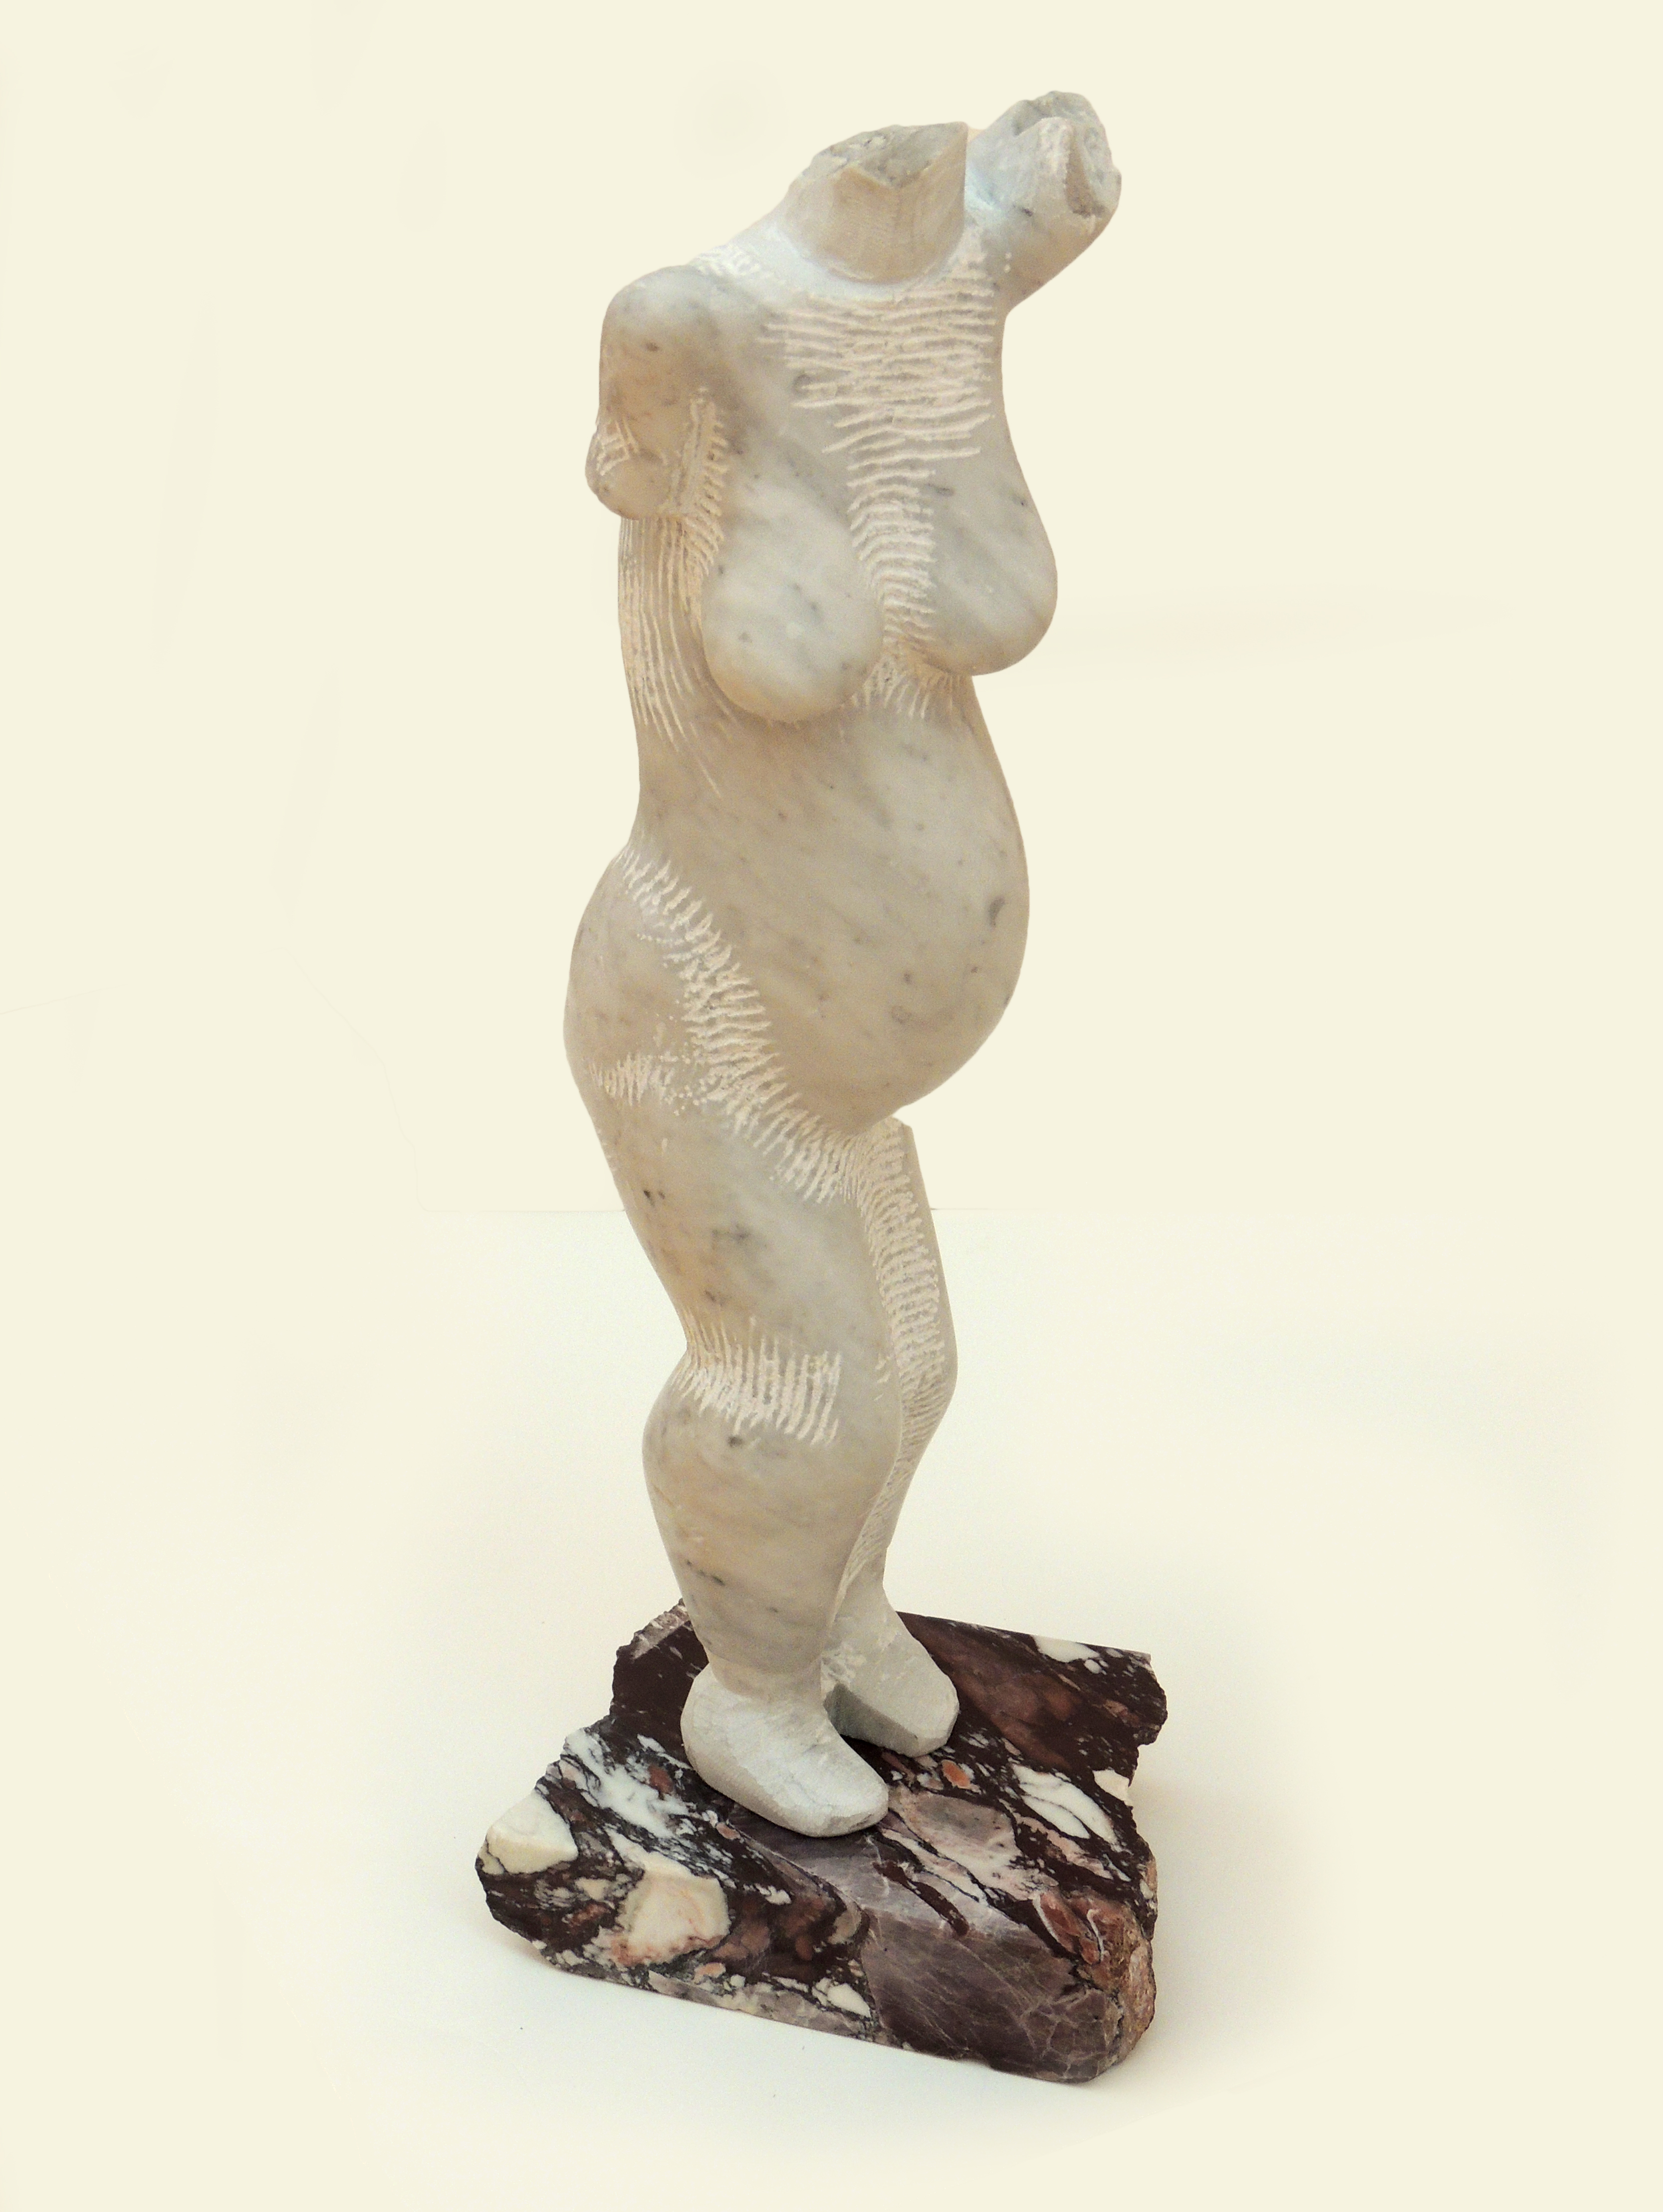 Best of Show | JJon Barlow Hudson | ETRUSCAN MAENAD – MOTHER | Italian Carrara Statuario Marble